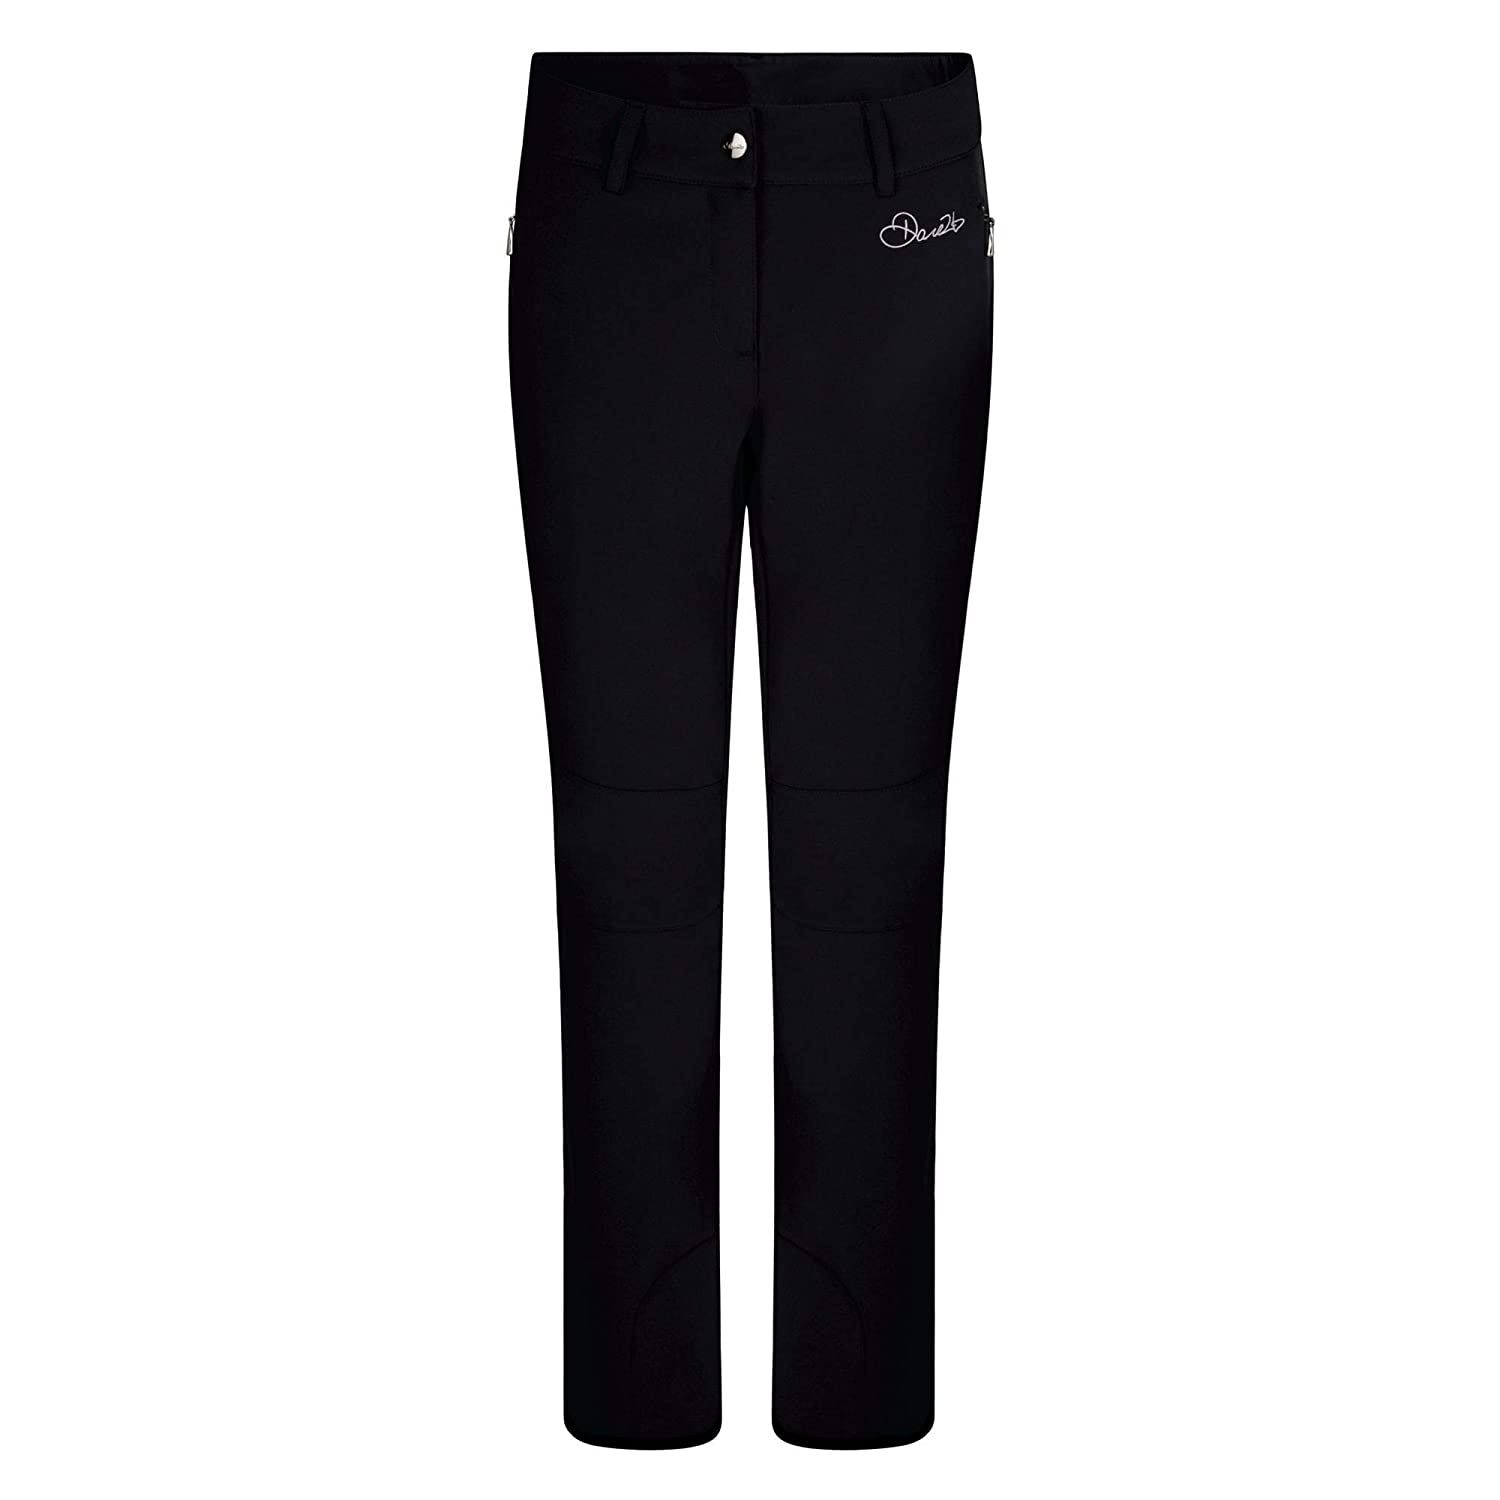 Dare 2B Rarity Water Repellent And Windproof Softshell Ski Pants Salopette Donna